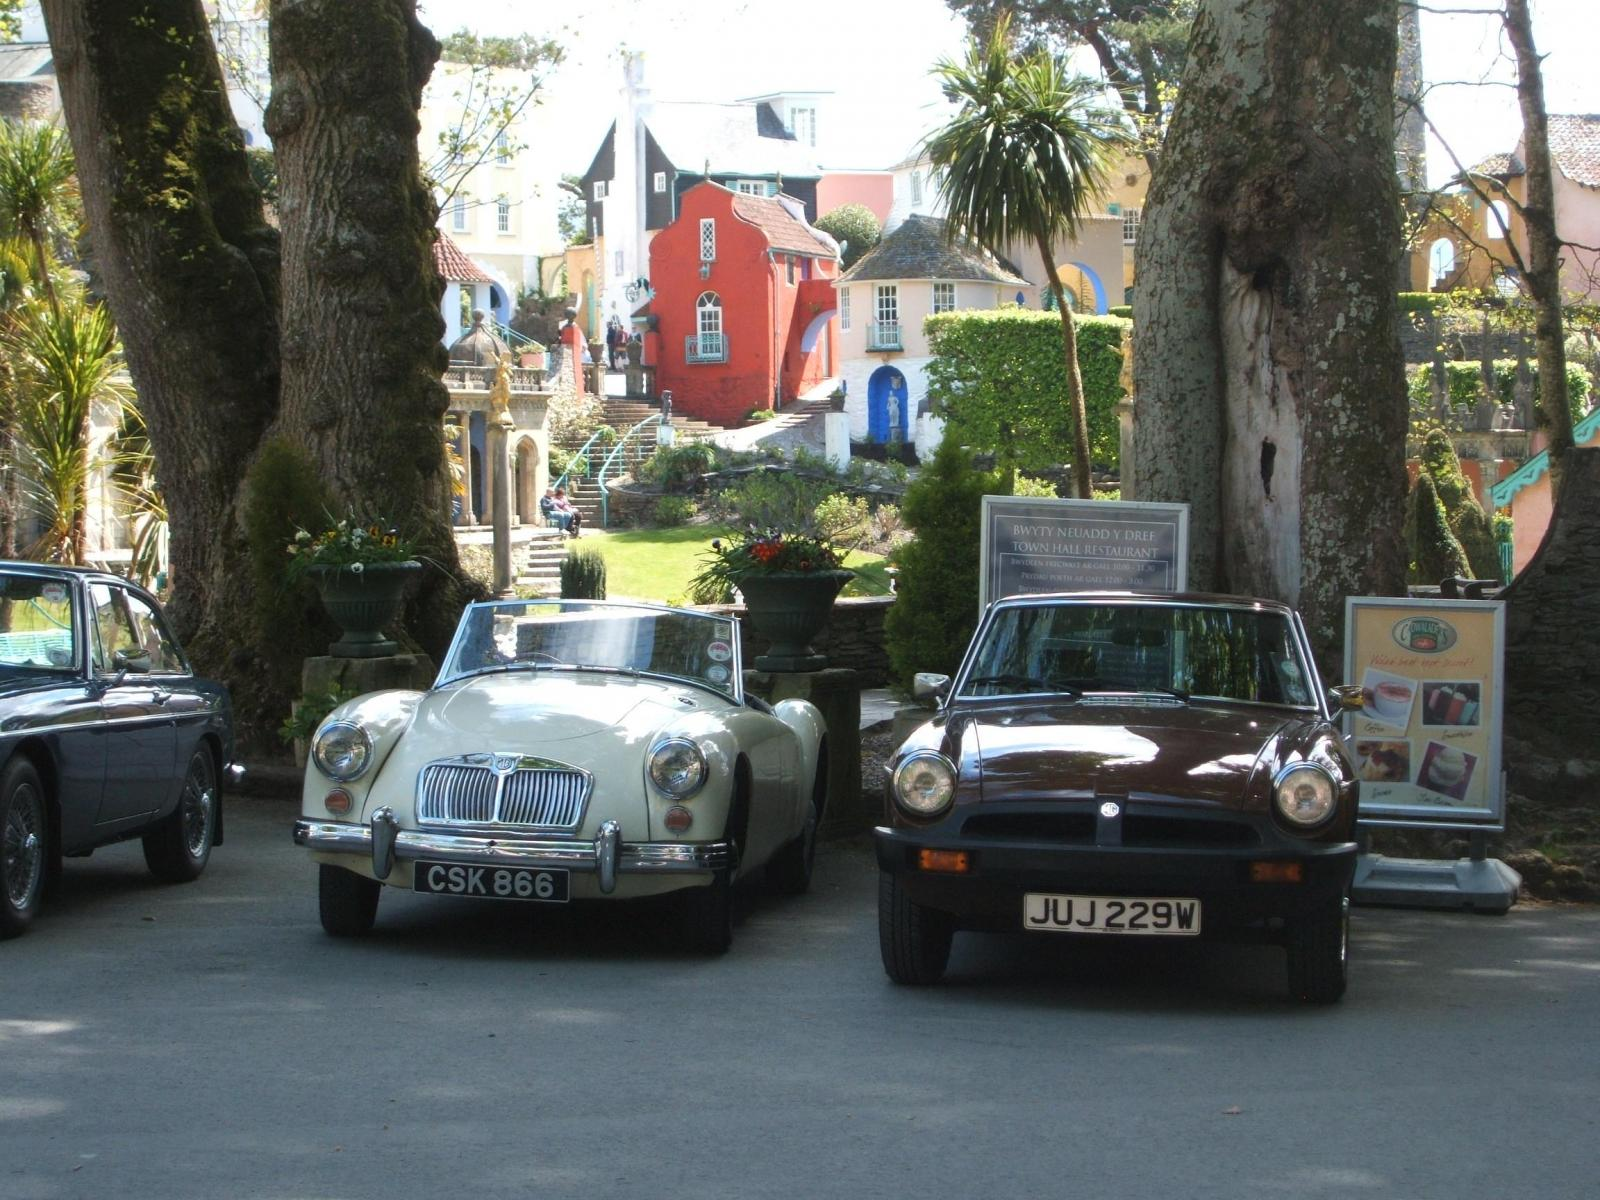 Members-cars-parked-in-Port-Merrion-on-the-tour-during-the-Wales-trip-ac-1